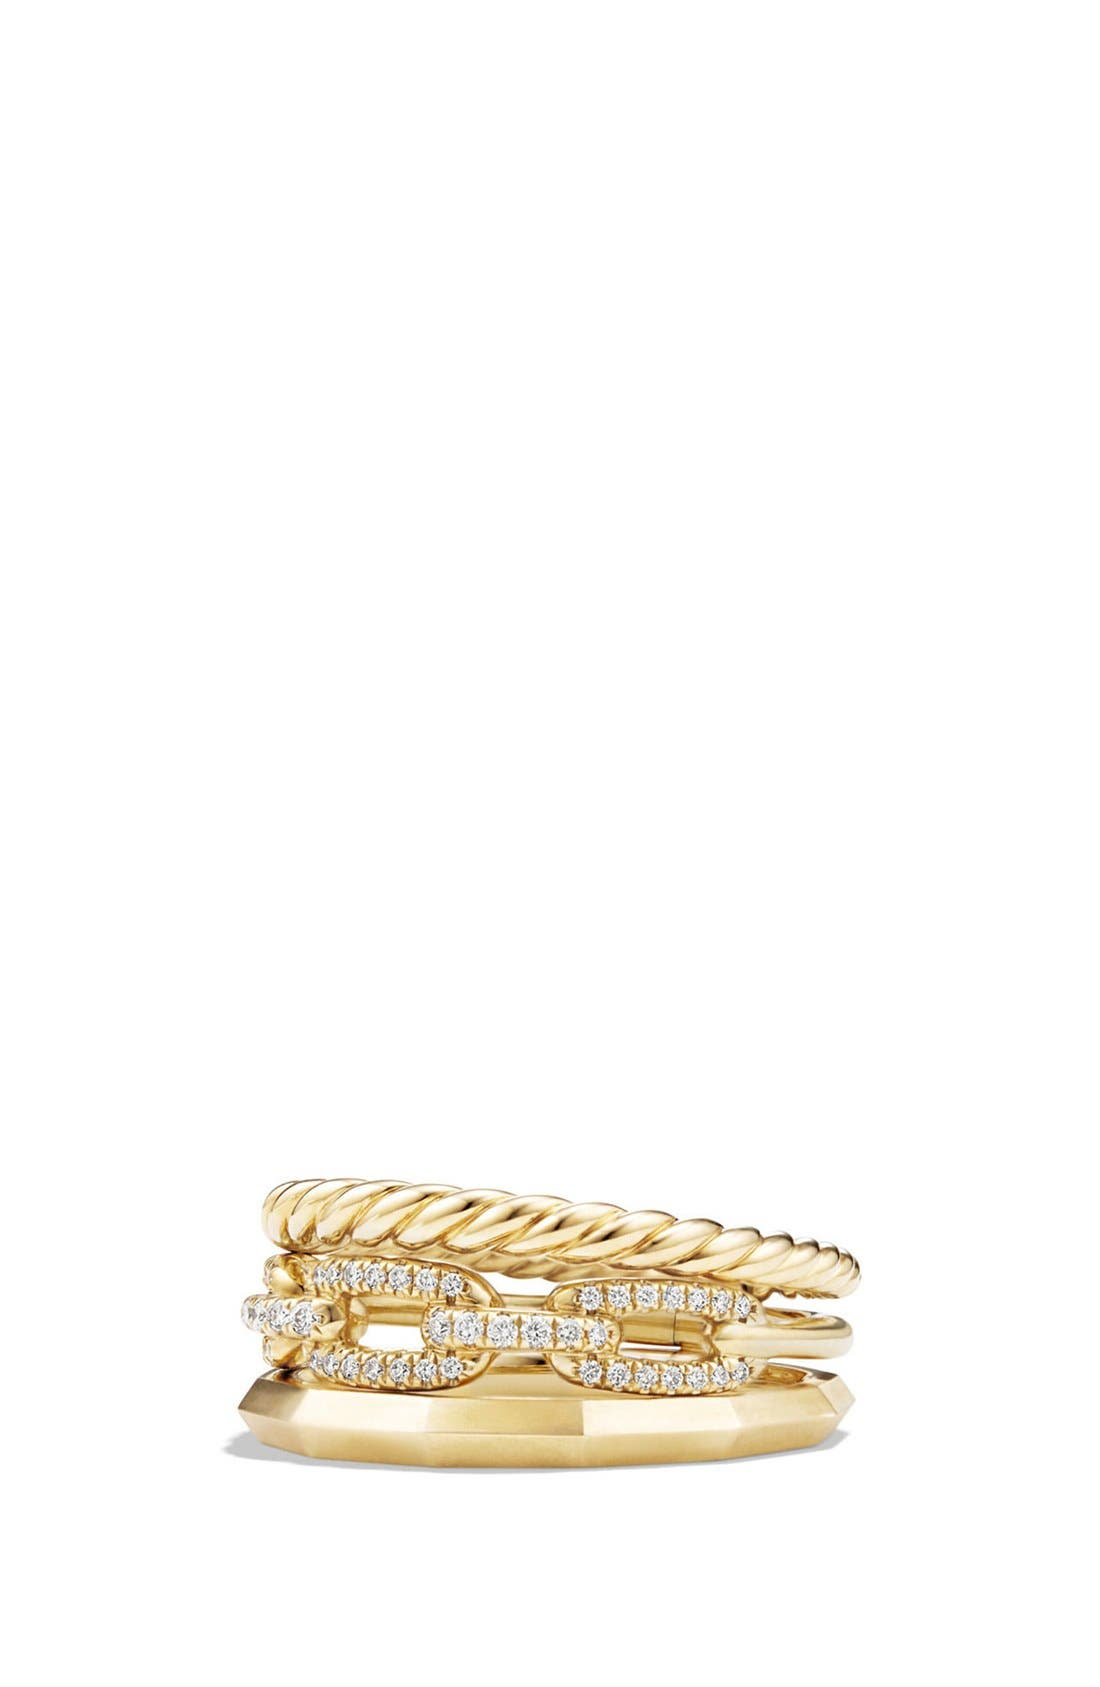 DAVID YURMAN Stax Narrow Diamond Ring